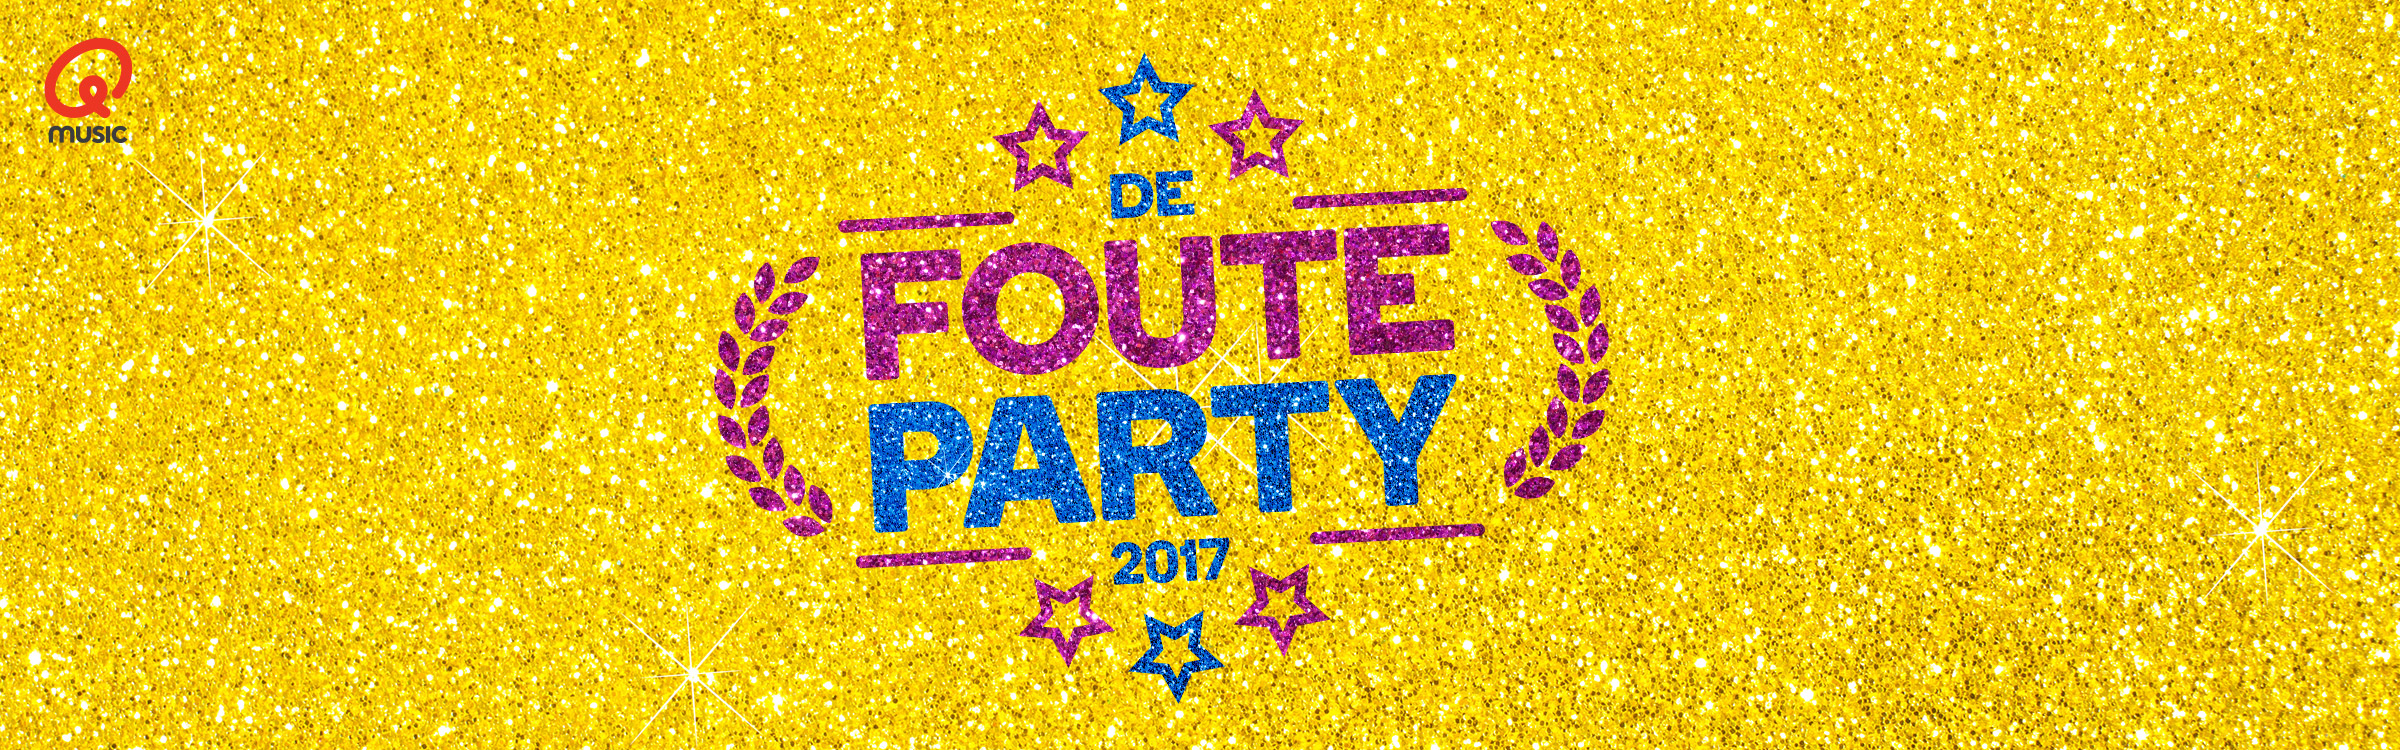 Qmusic actionheader fouteparty2017  1